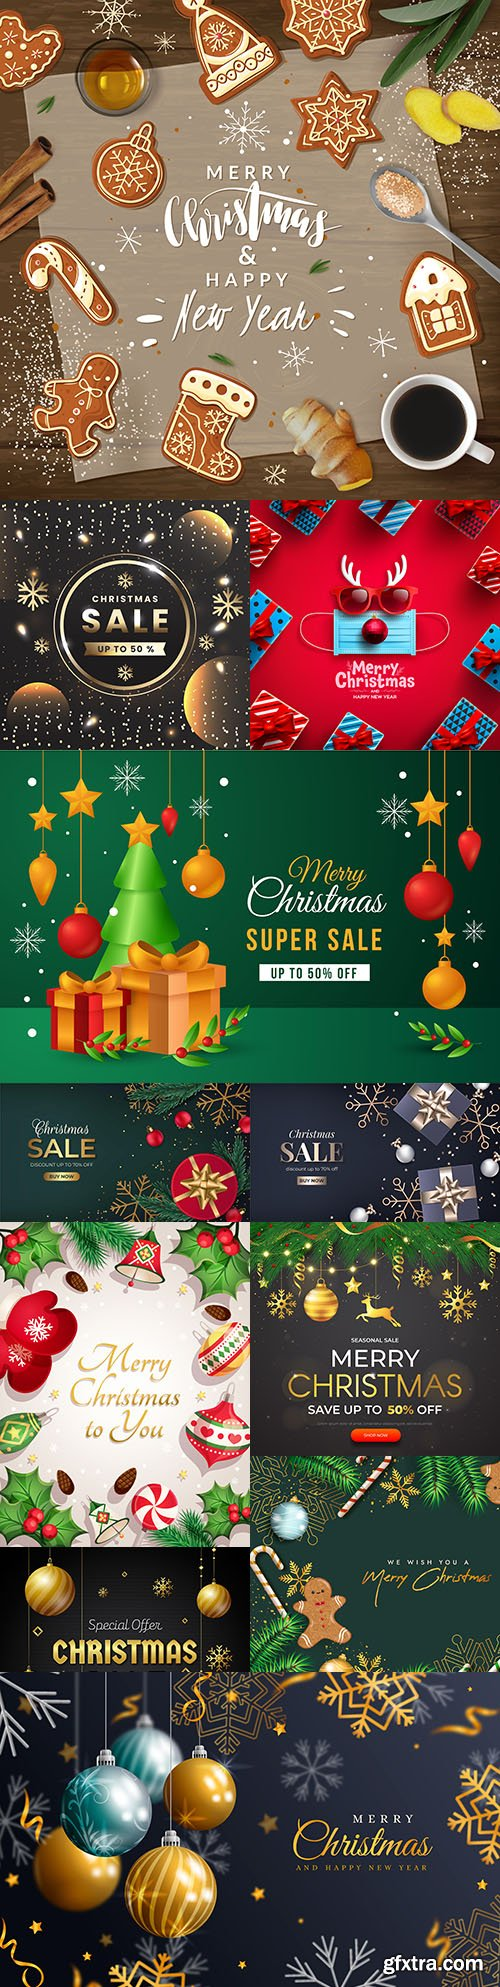 Christmas sale and New Year background realistic illustration